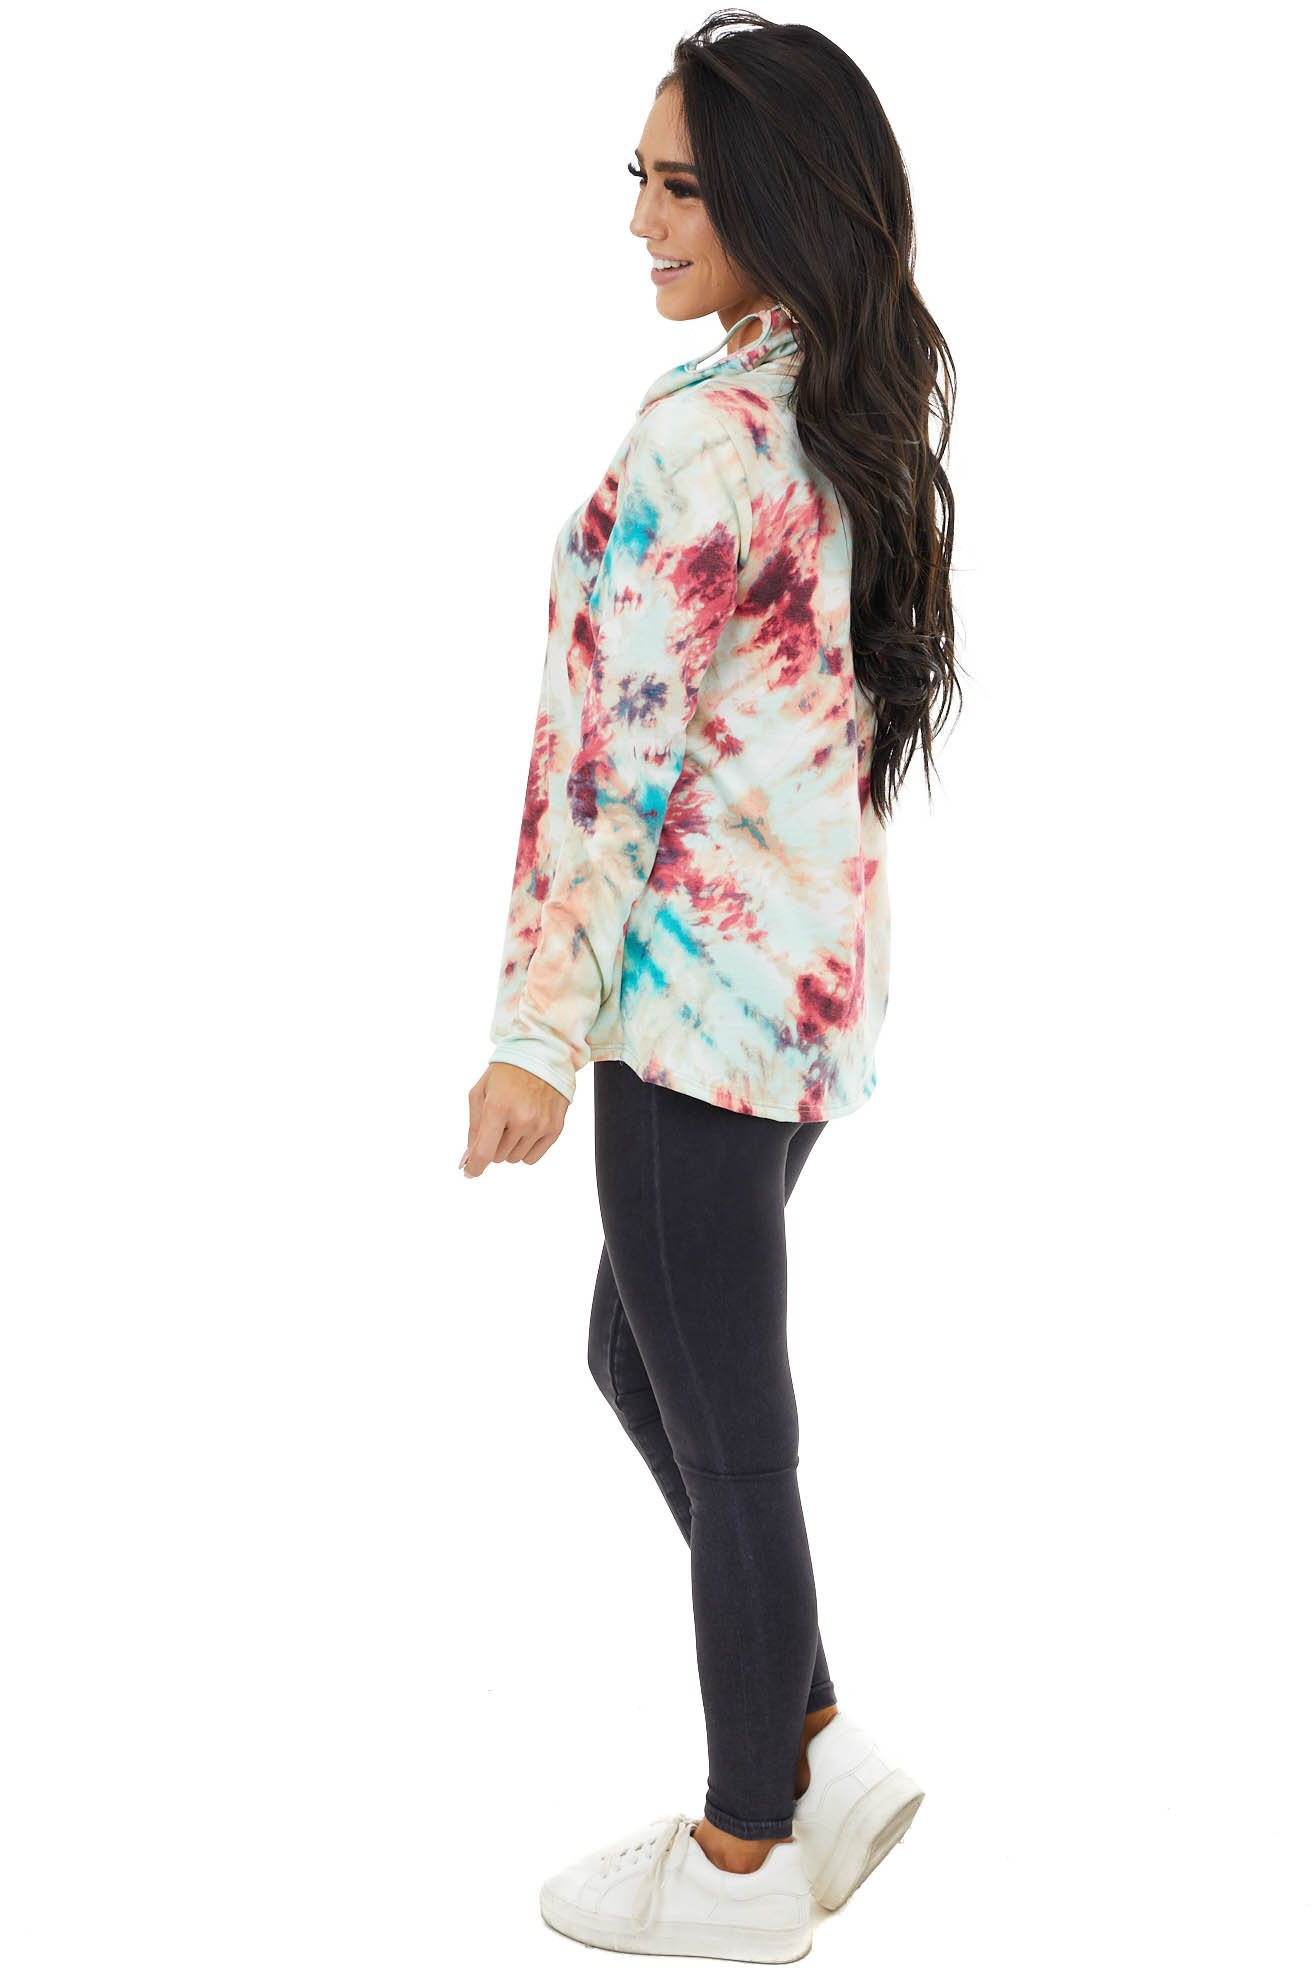 Fuchsia and Teal Tie Dye Top with Cowl Neck Face Covering